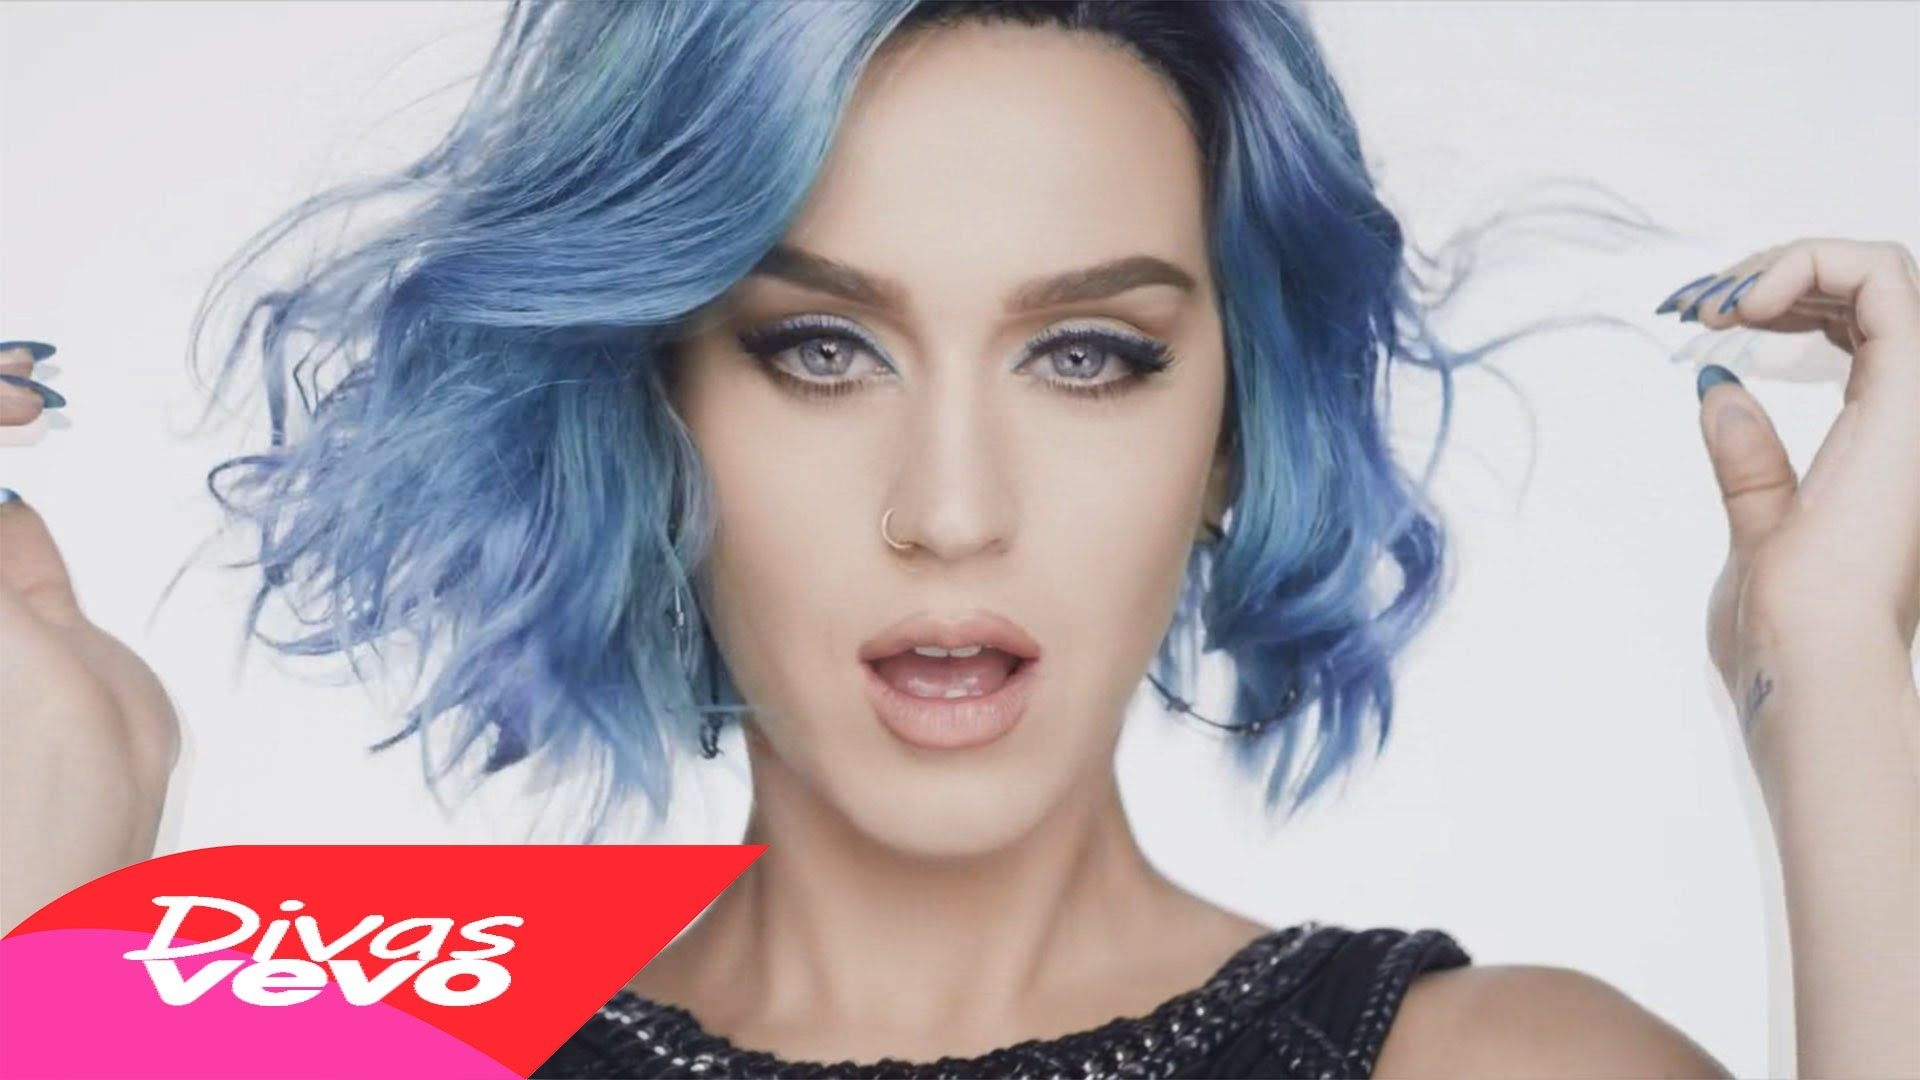 Katy Perry International Smile Music Video Katy Perry